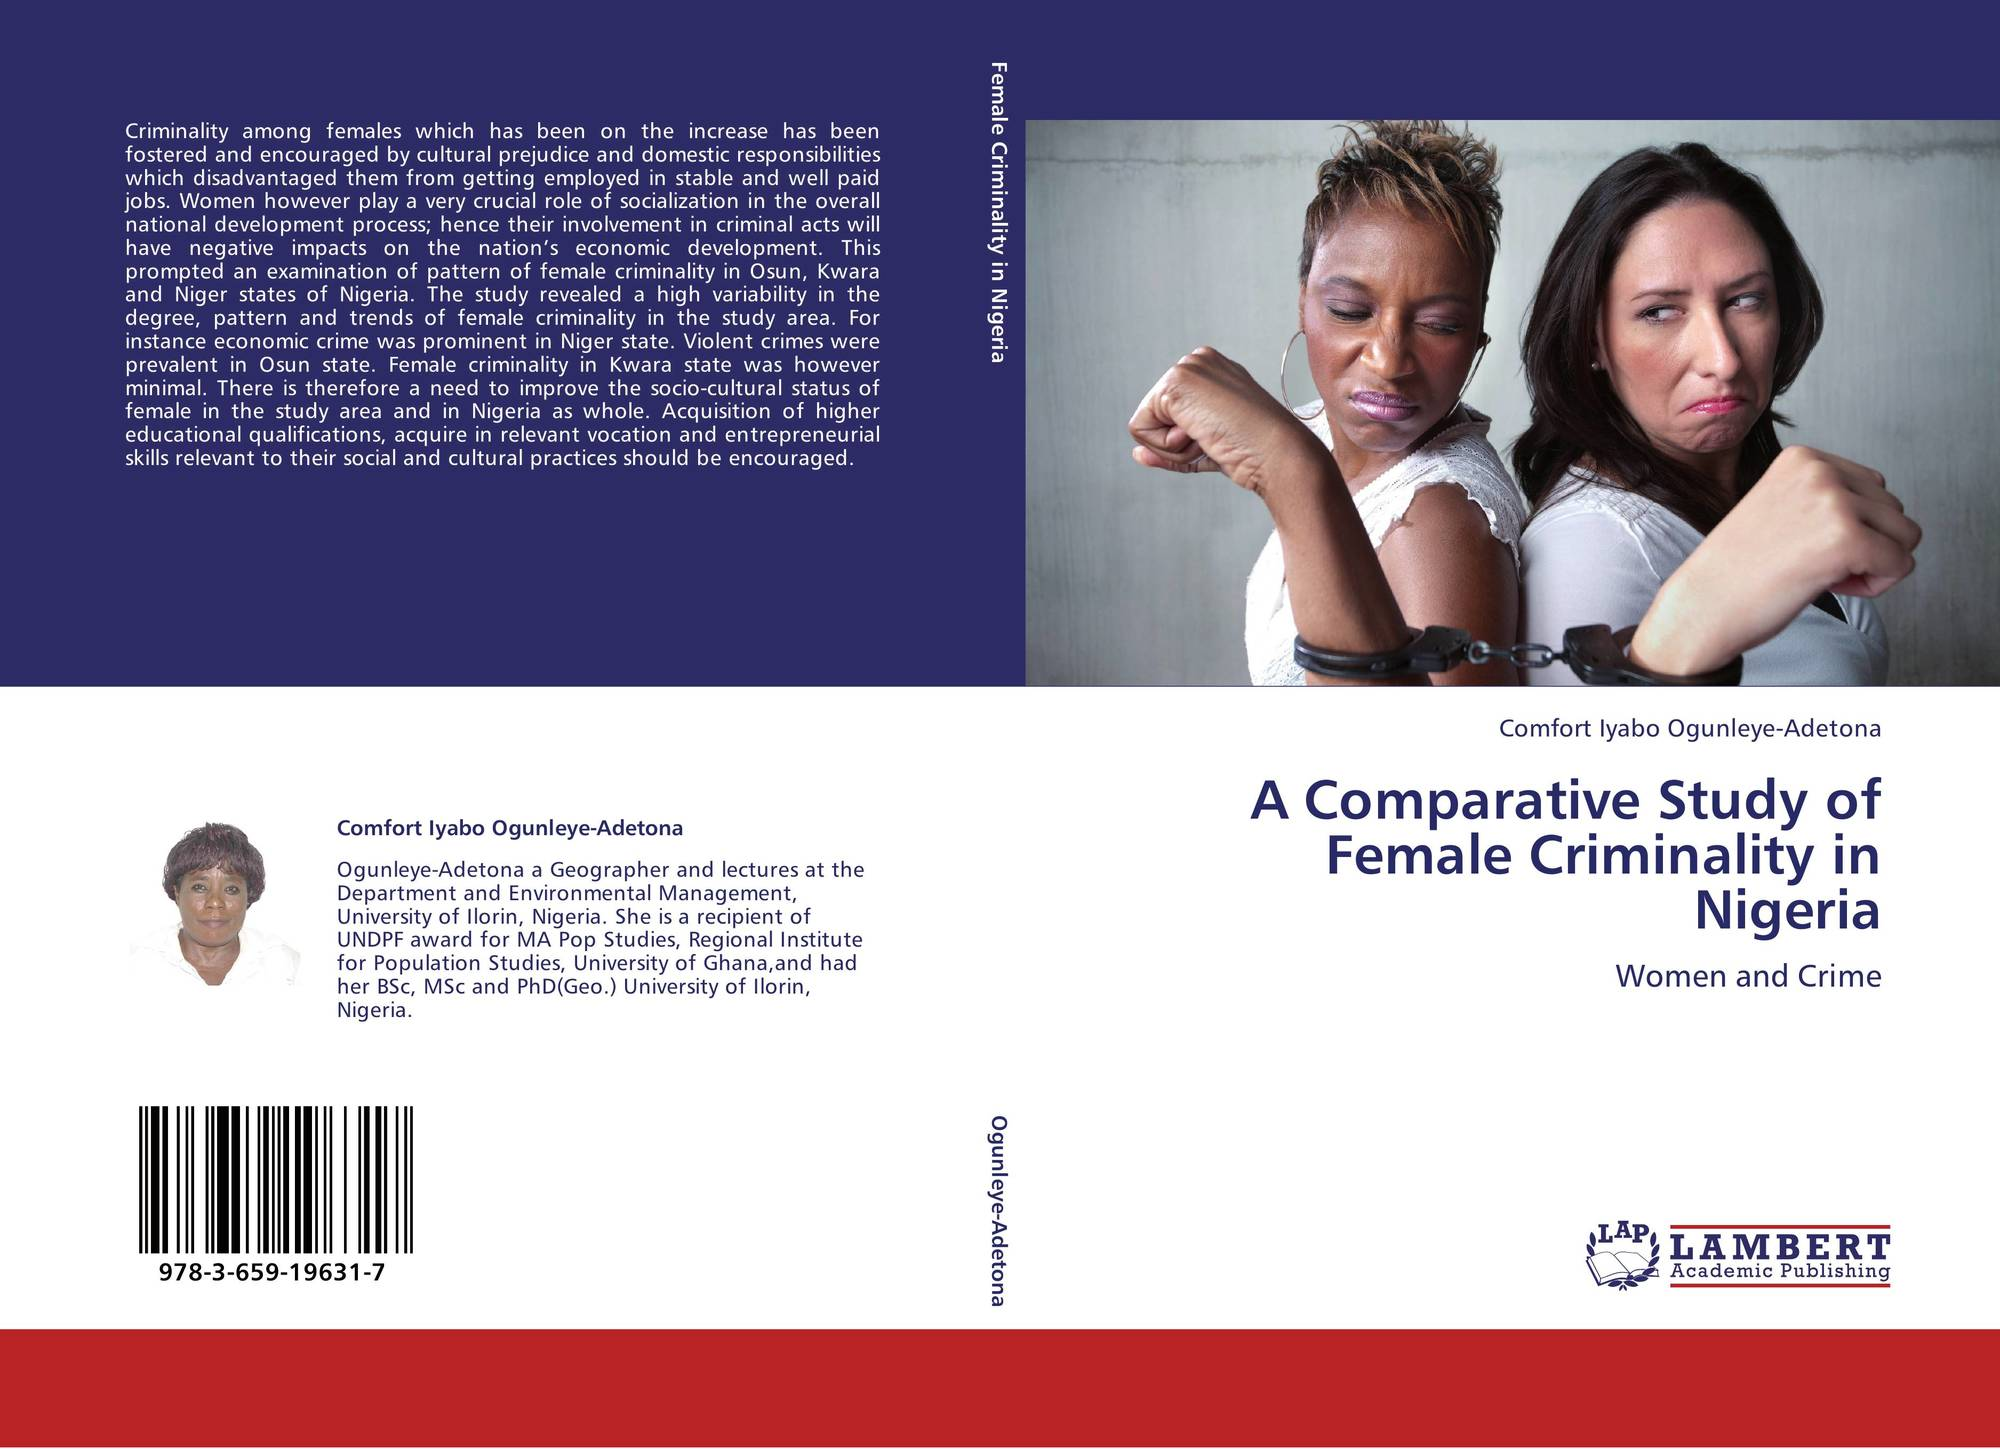 the female criminality Female criminality is both inhibited and molded by two powerful focal concerns ascribed to women: (1) role obligations (daughter, wife, mother) and the presumption of female nurturance (2) expectations of female beauty and sexual virtue.